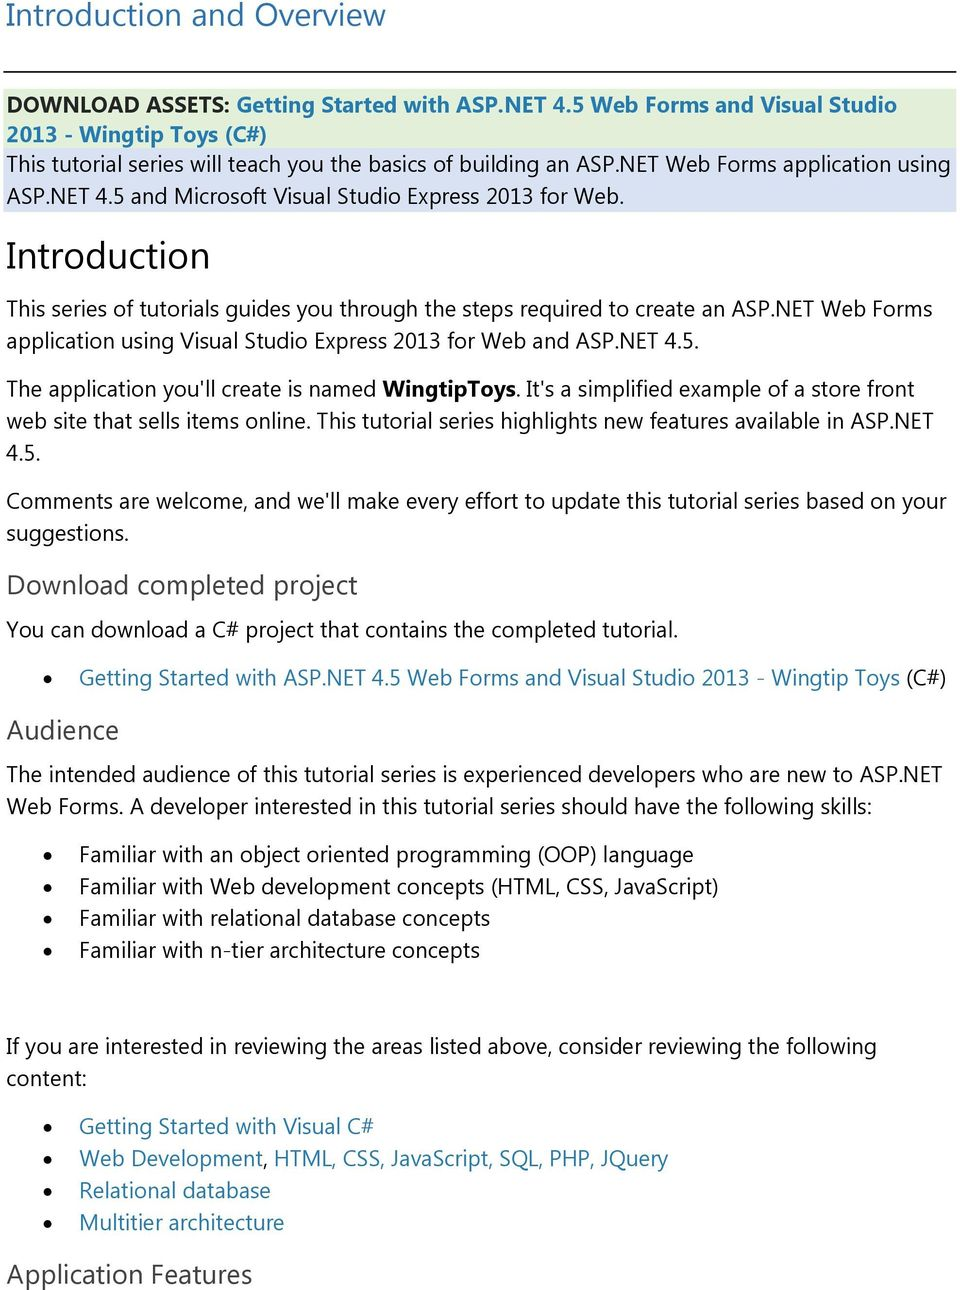 NET Web Forms application Visual Studio Express 2013 for Web and ASP.NET 4.5. The application you'll create is named WingtipToys.